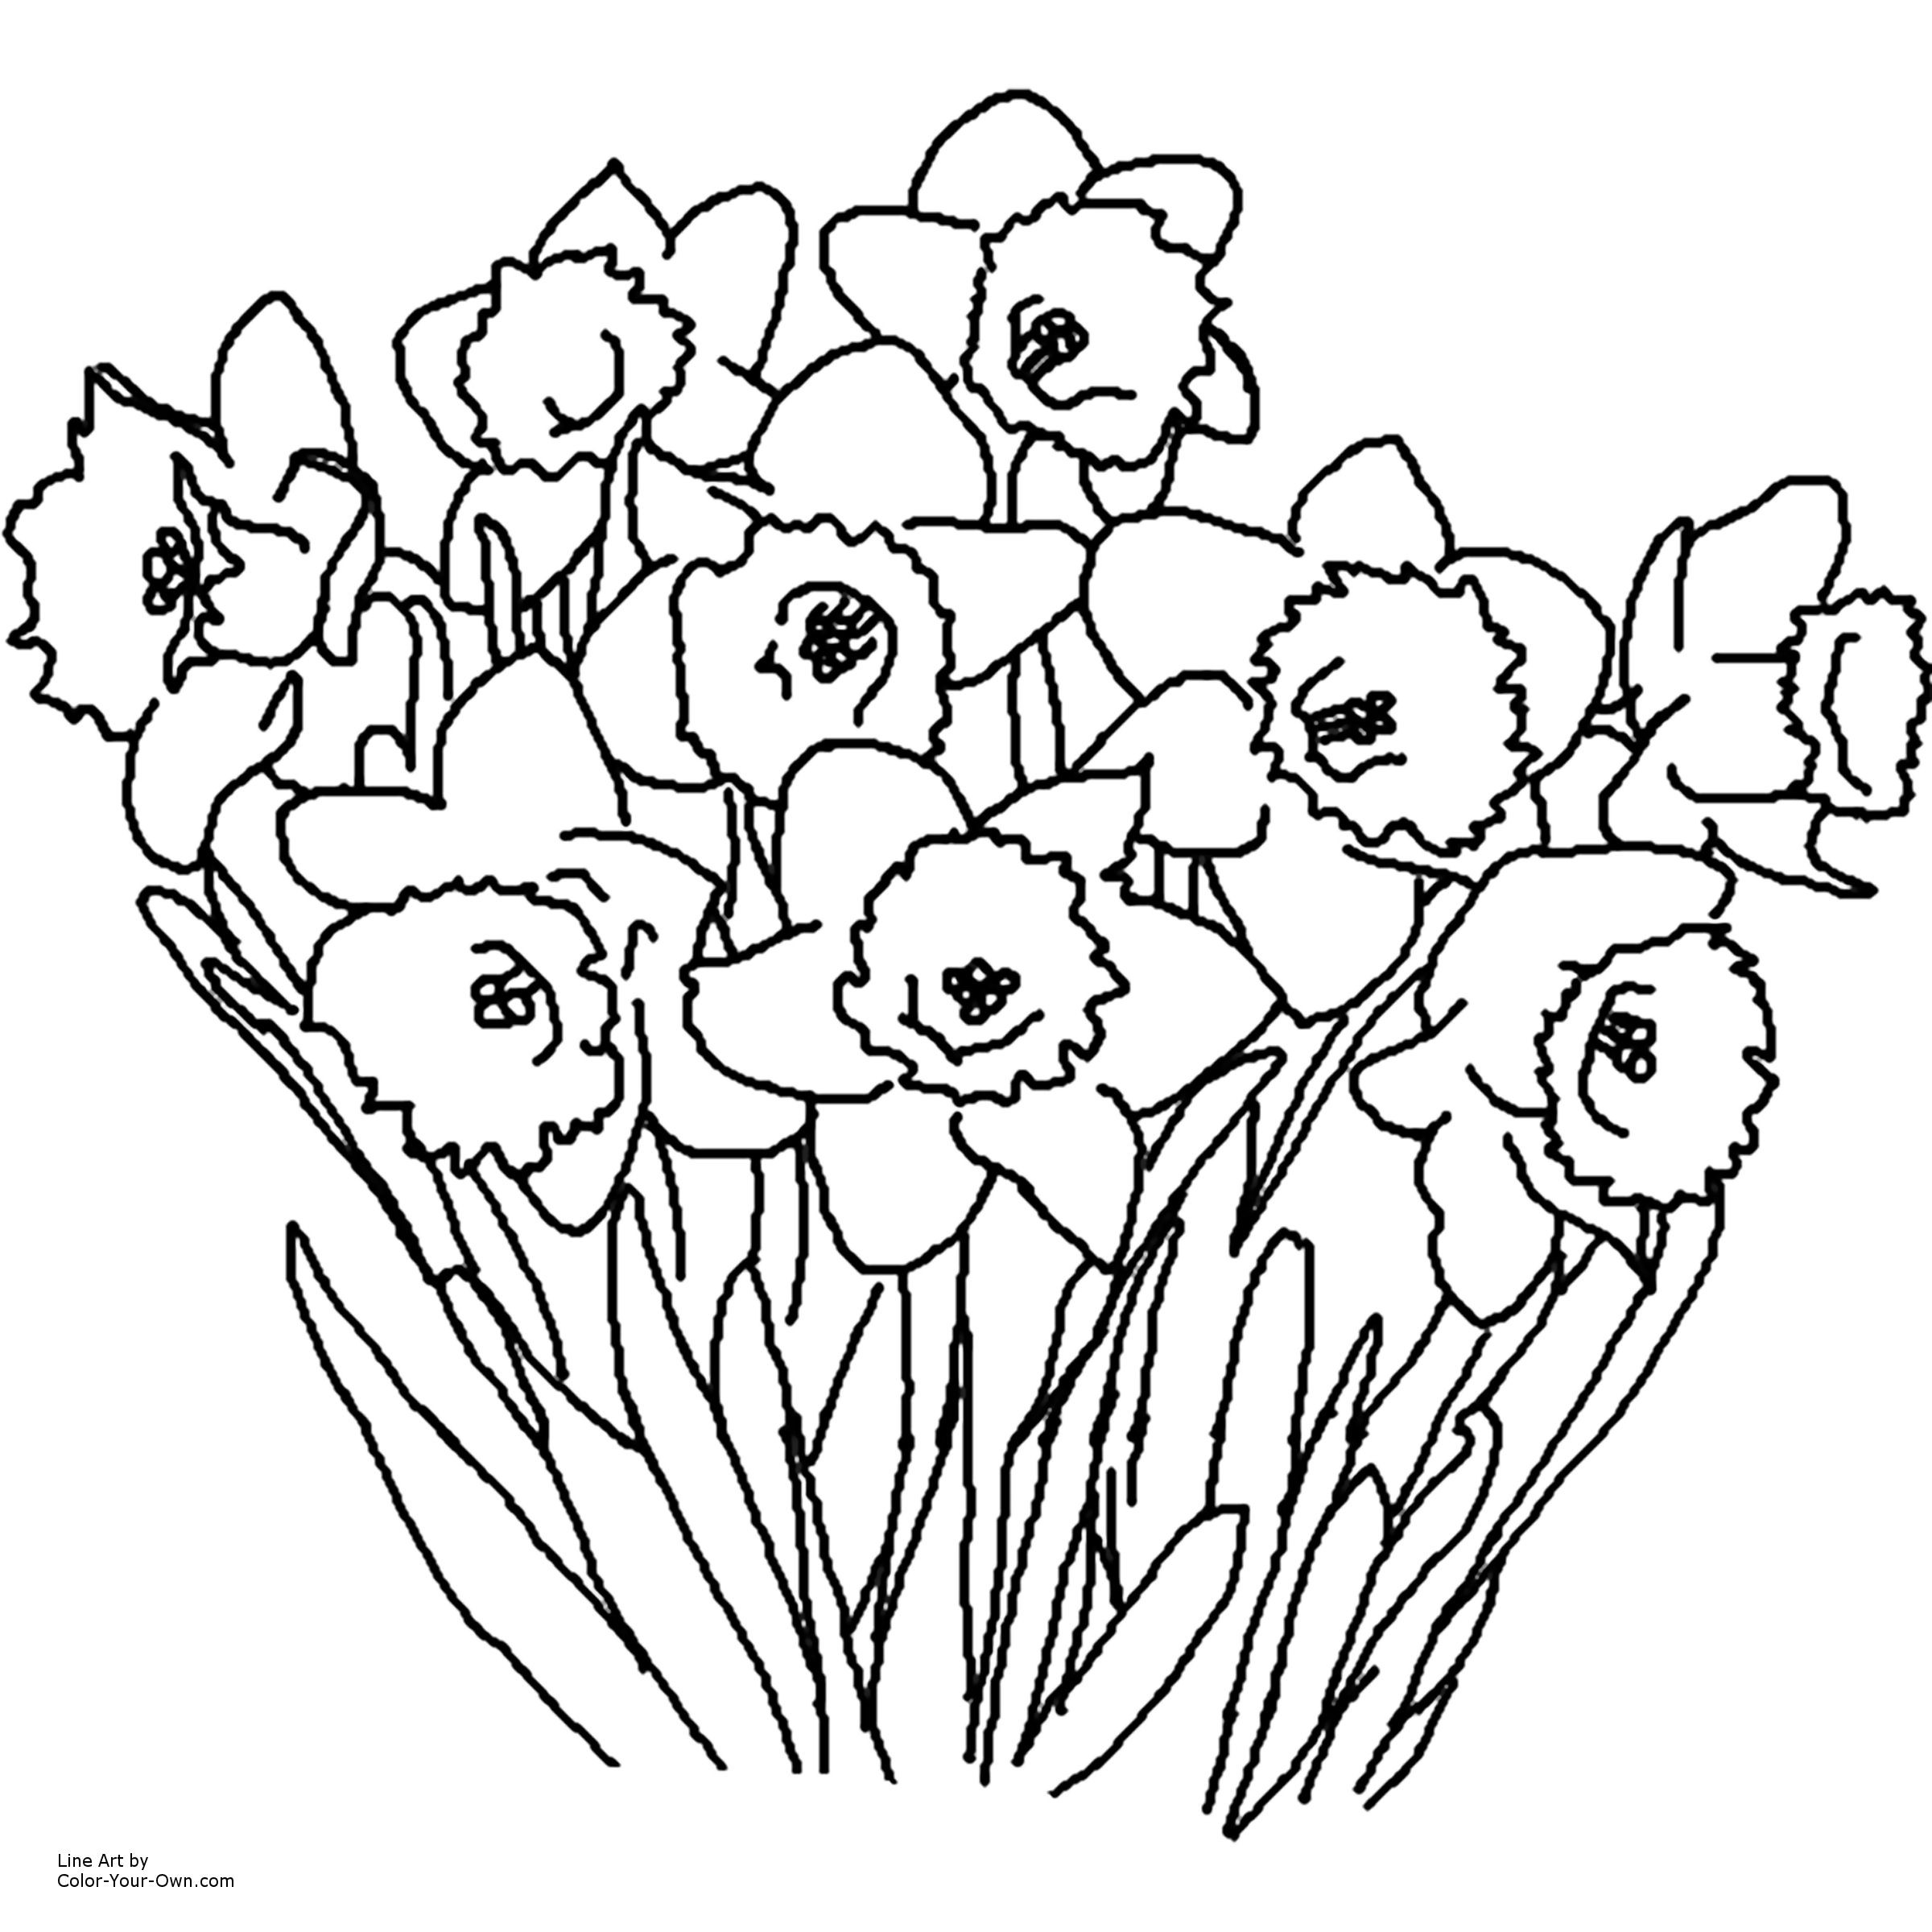 Spring flowers drawing at getdrawings free for personal use 2400x2400 spring flowers coloring pages for kids freecolorngpages mightylinksfo